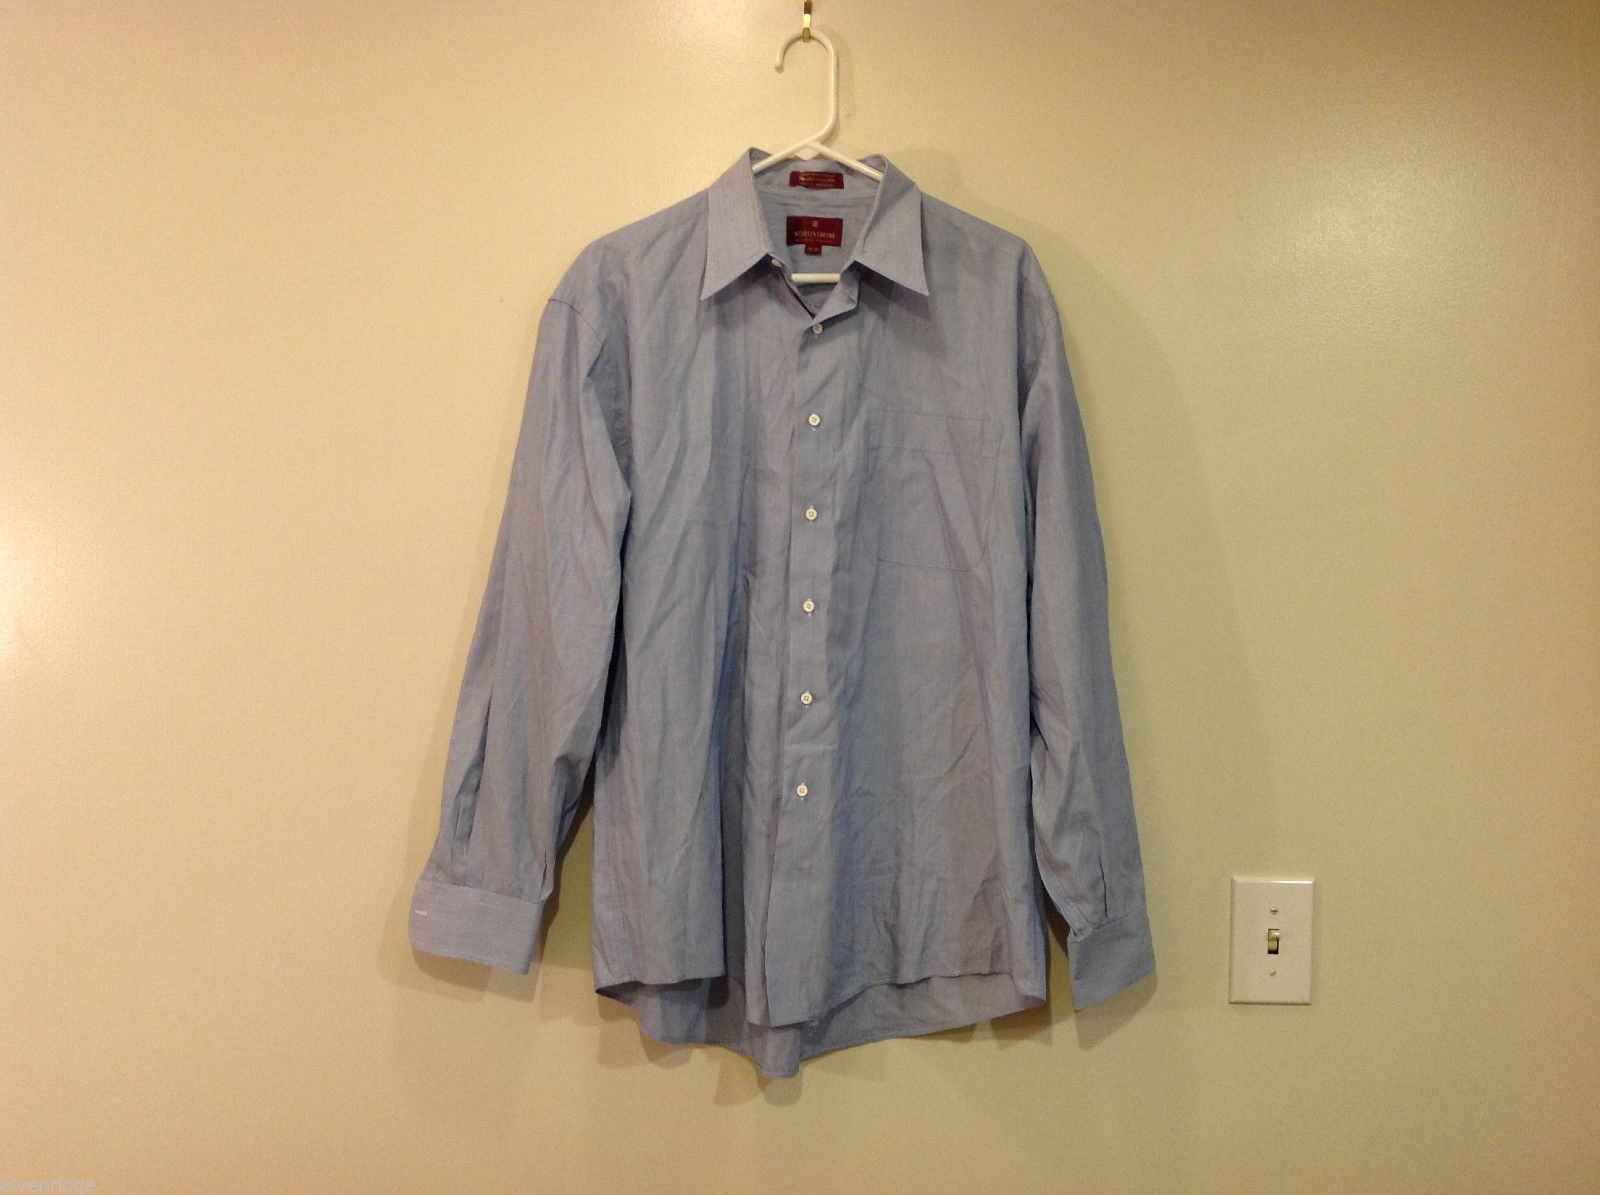 Nordstrom Light Blue Tiny Stripes Long Sleeve Shirt, Size 16/35, 100% cotton